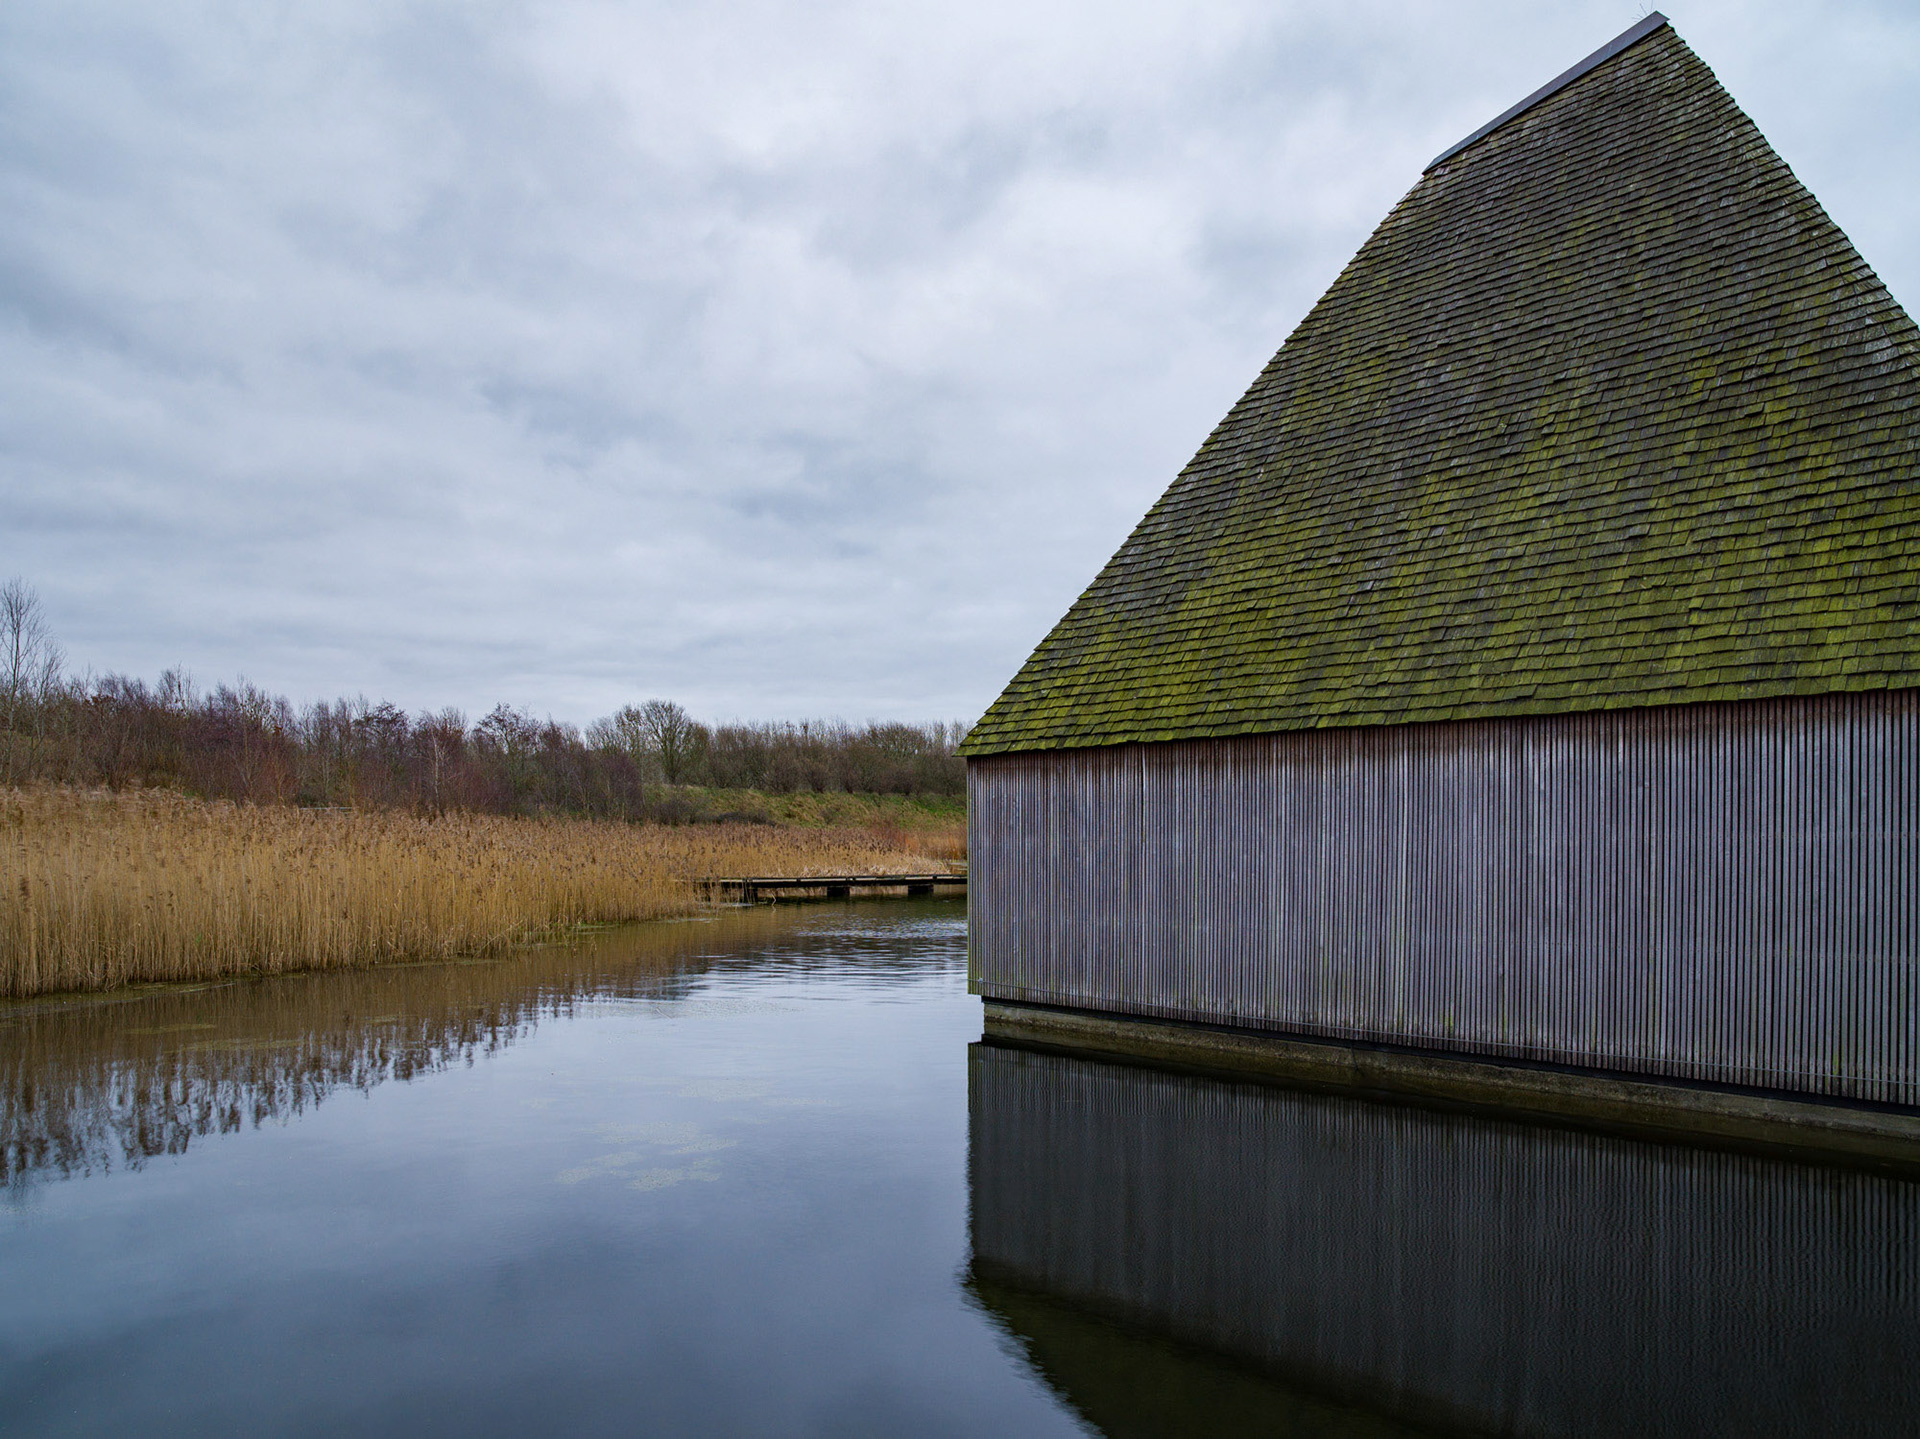 Architectural Photography Brockholes half nature and reeds and building showing it's curves and structure mixing into the atmosphere